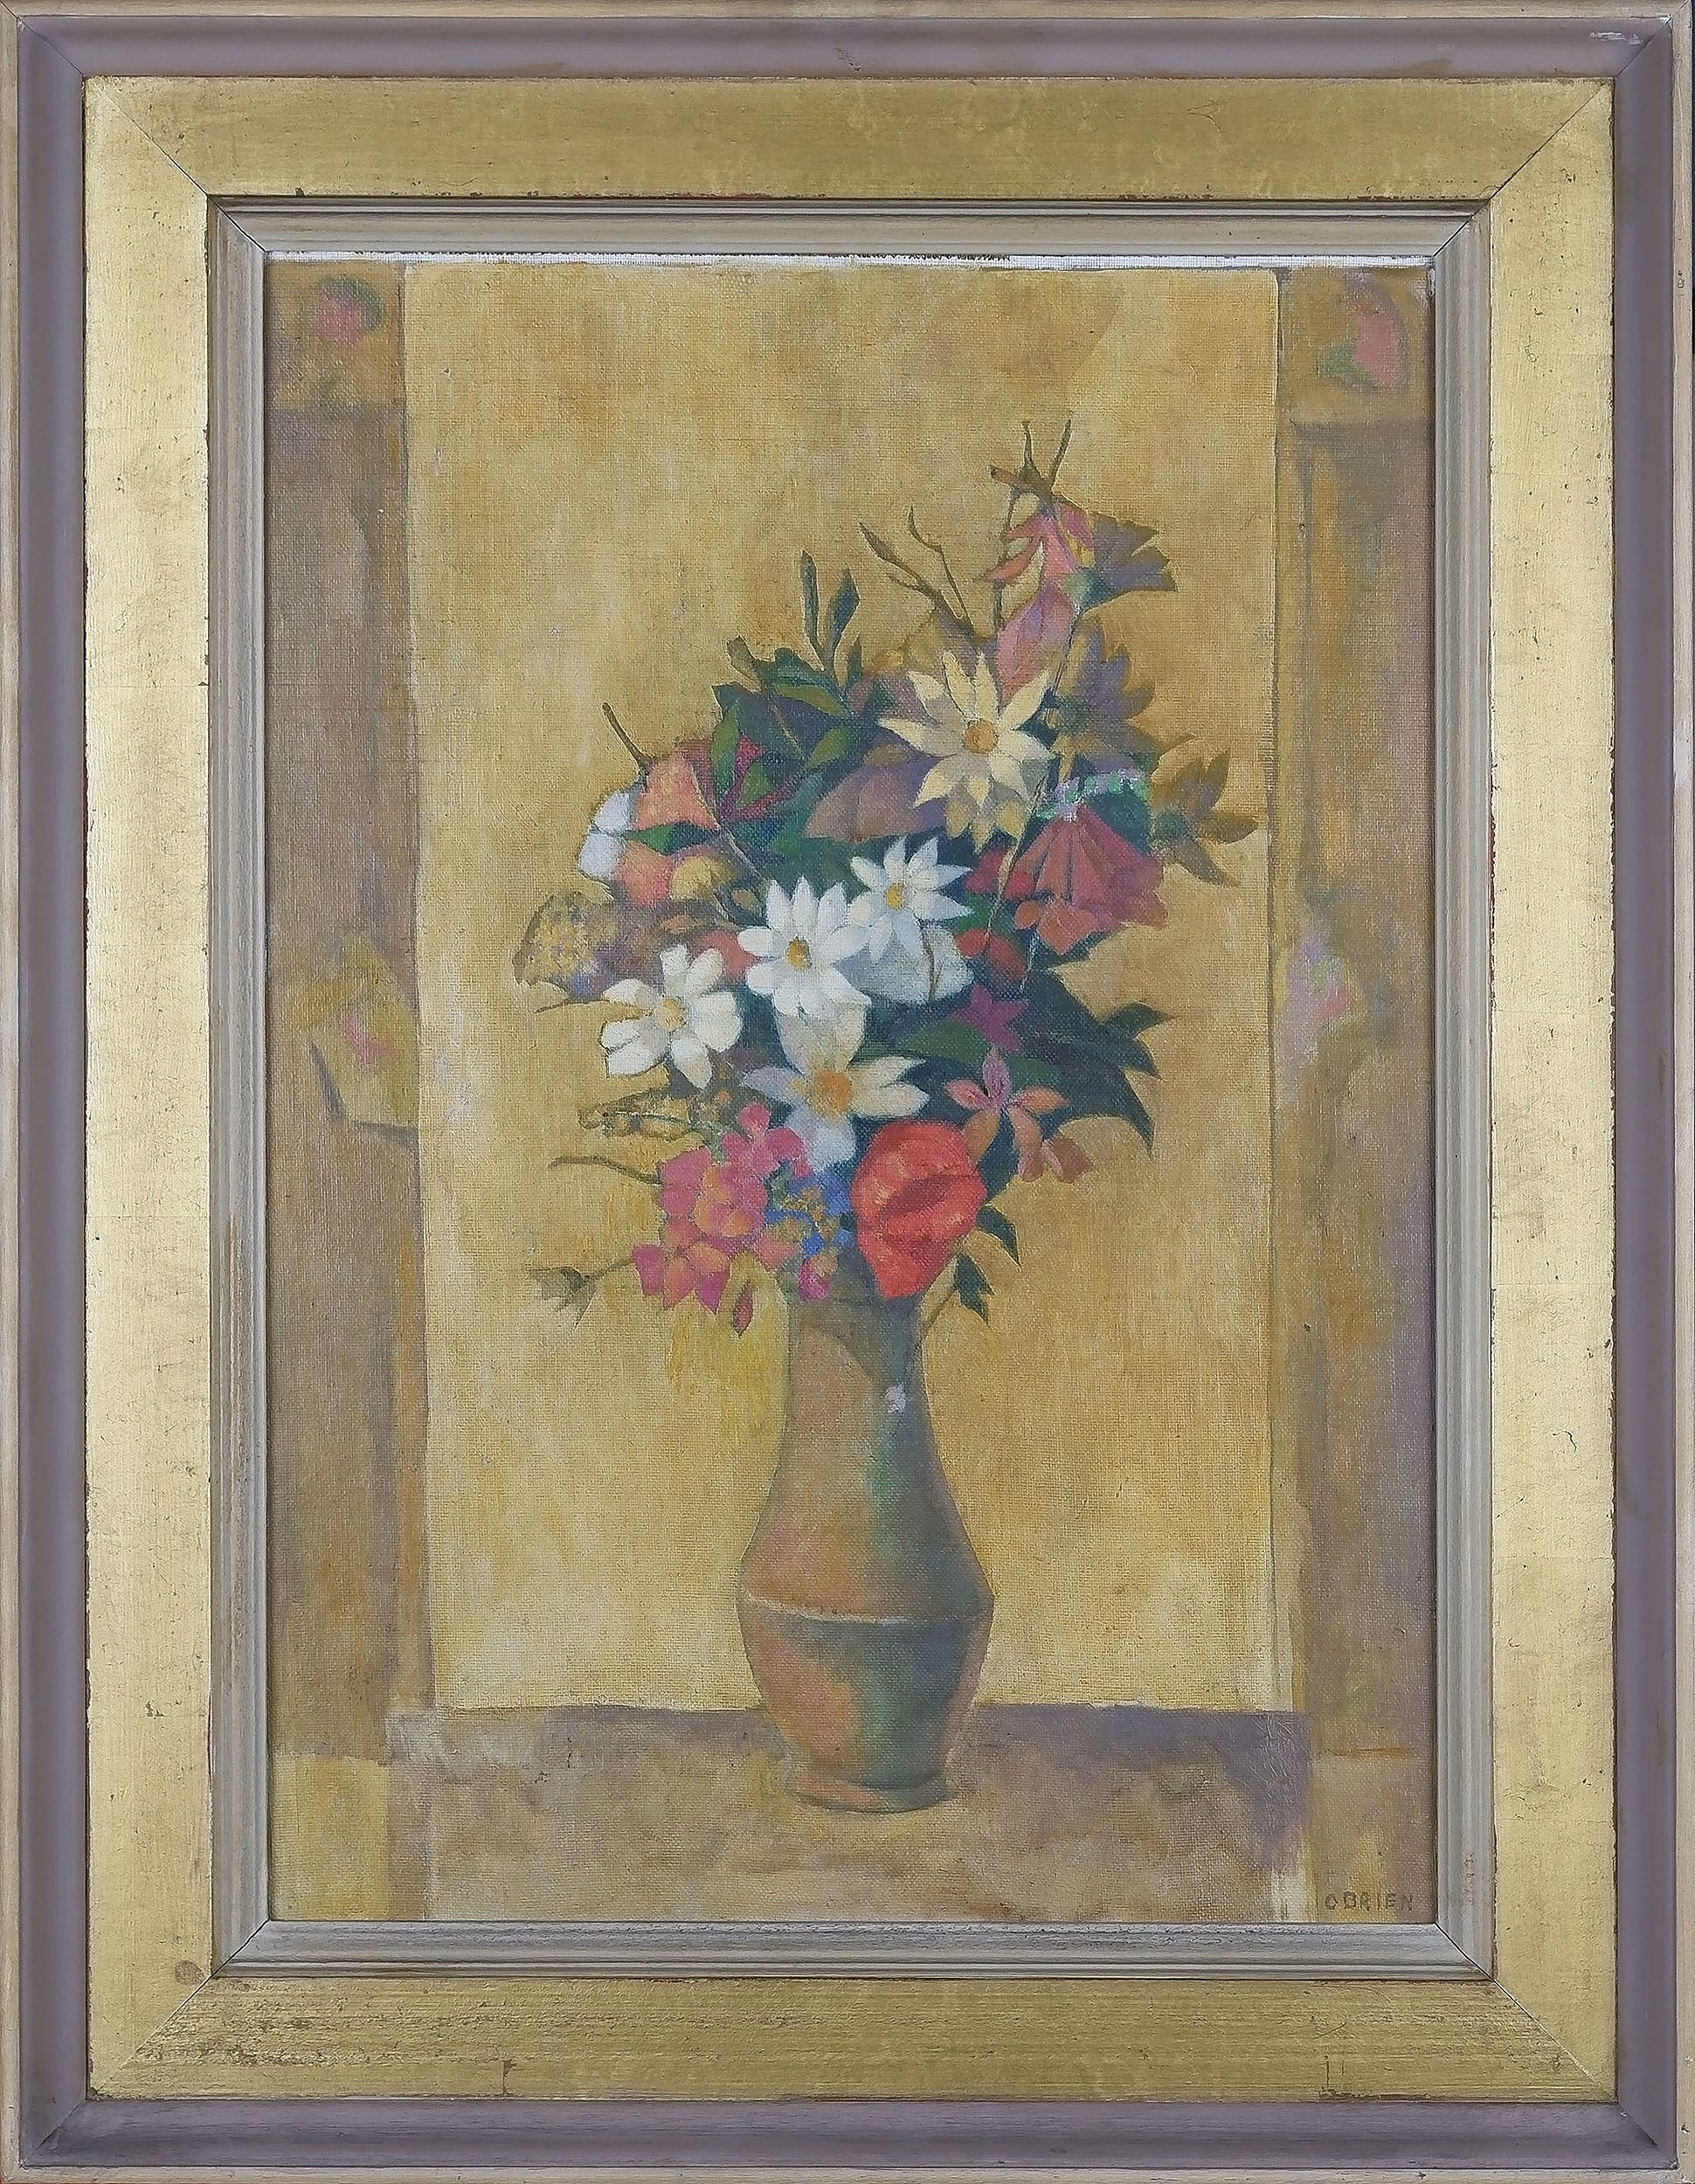 'Justin Maurice OBrien (1917-96) Wildflowers Greece 1965 Oil On Canvas'